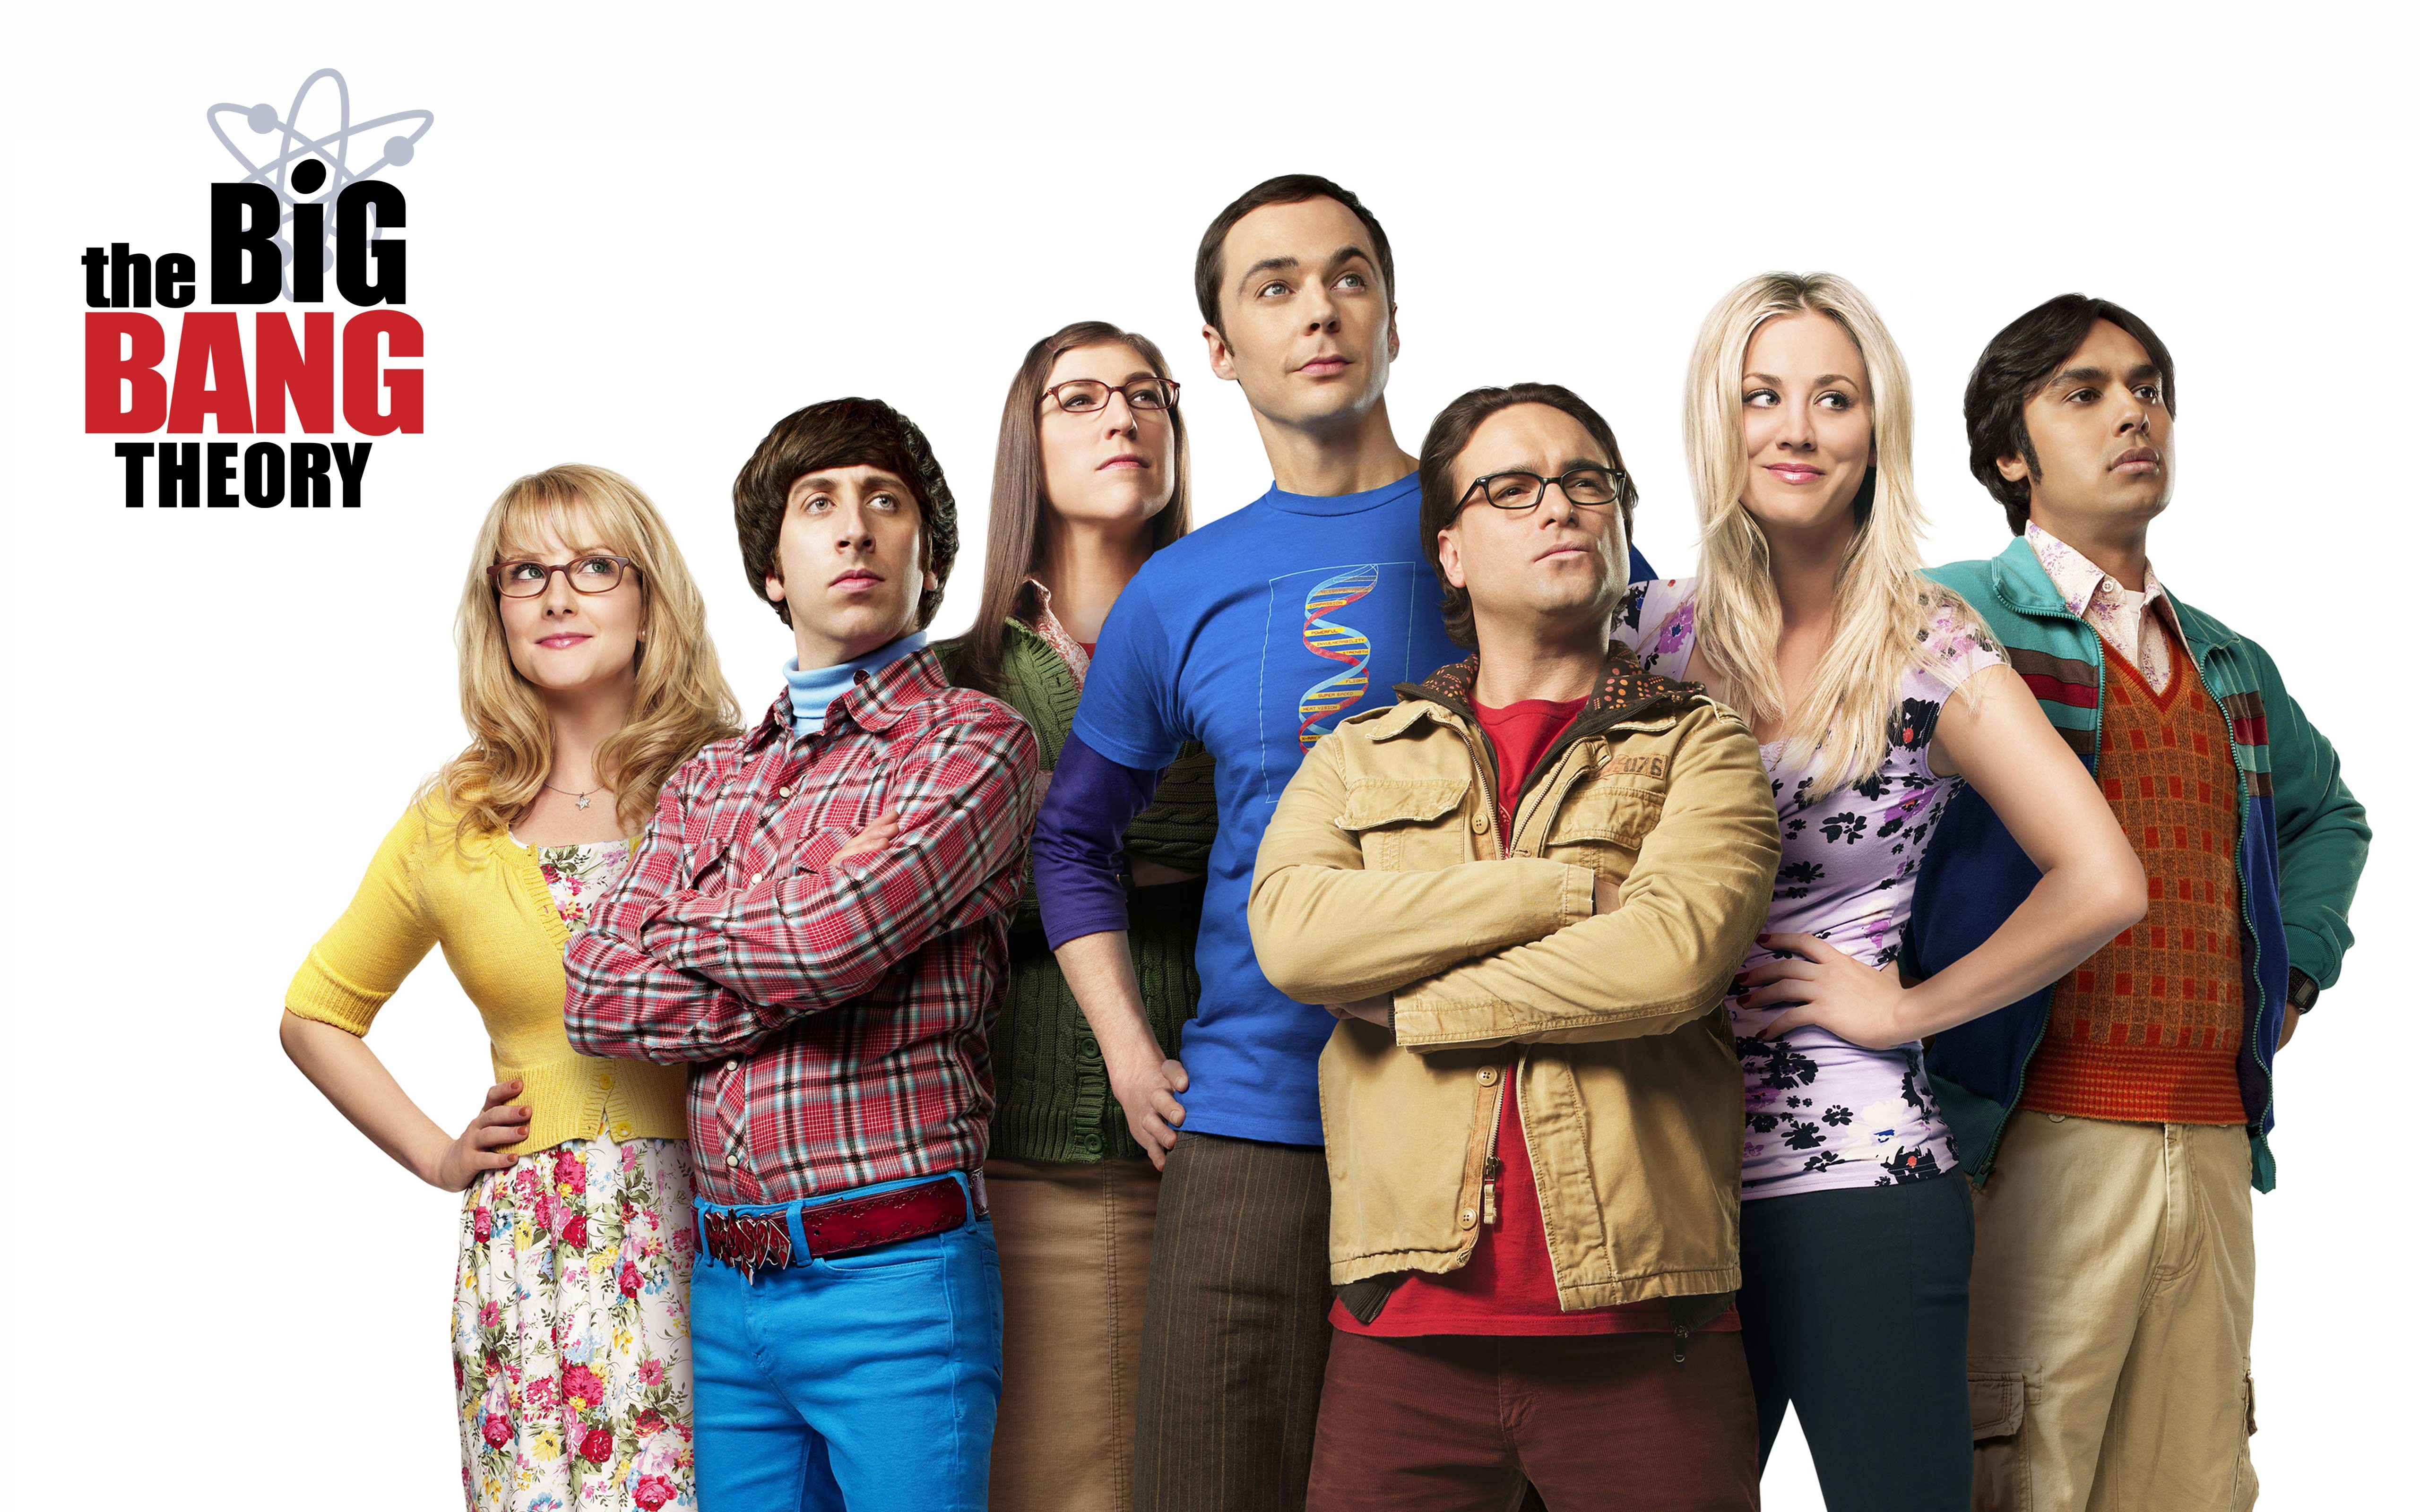 https://cinemaplanet.pt/wp-content/uploads/2017/03/the-big-bang-theory.jpg